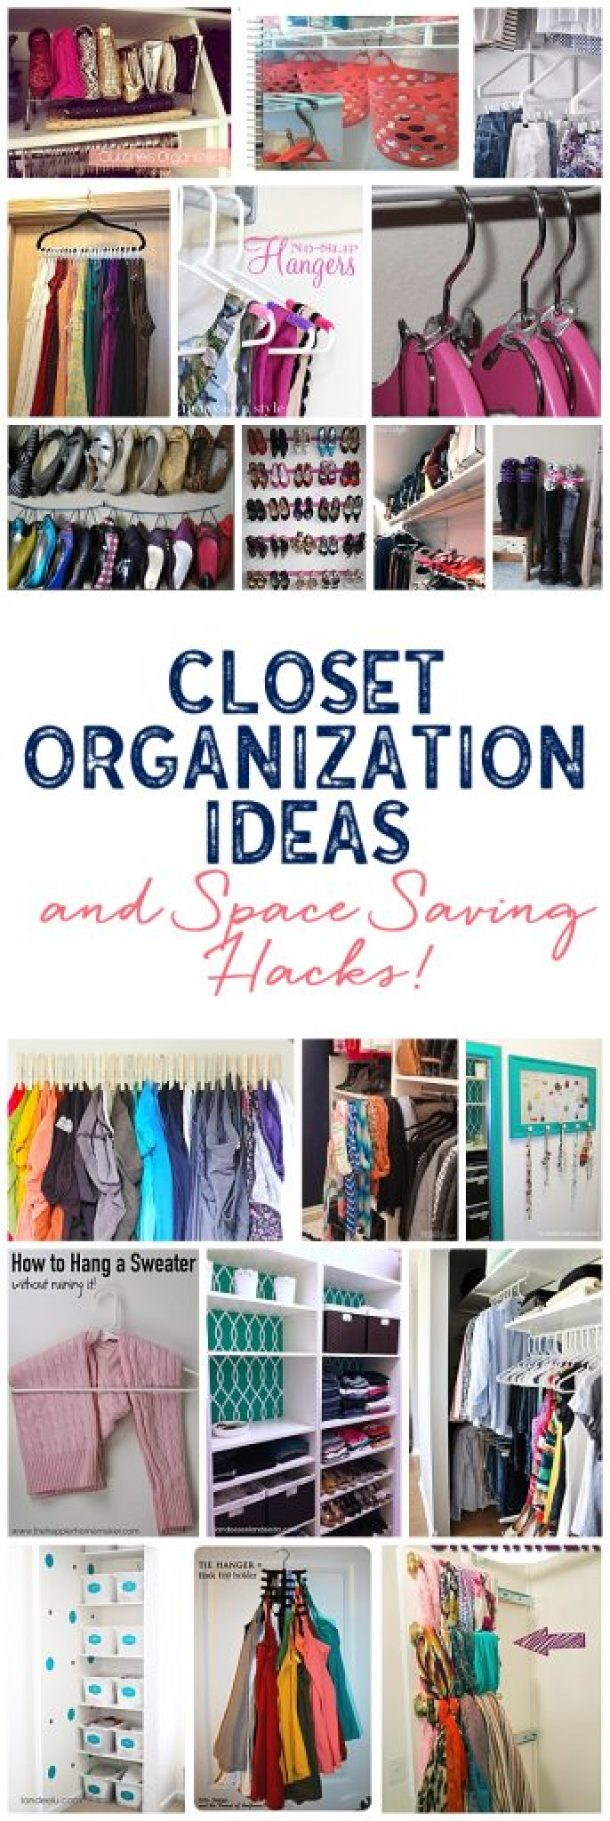 So many awesome closet organization ideas to make your closet the most functional space in the house! - Landeelu